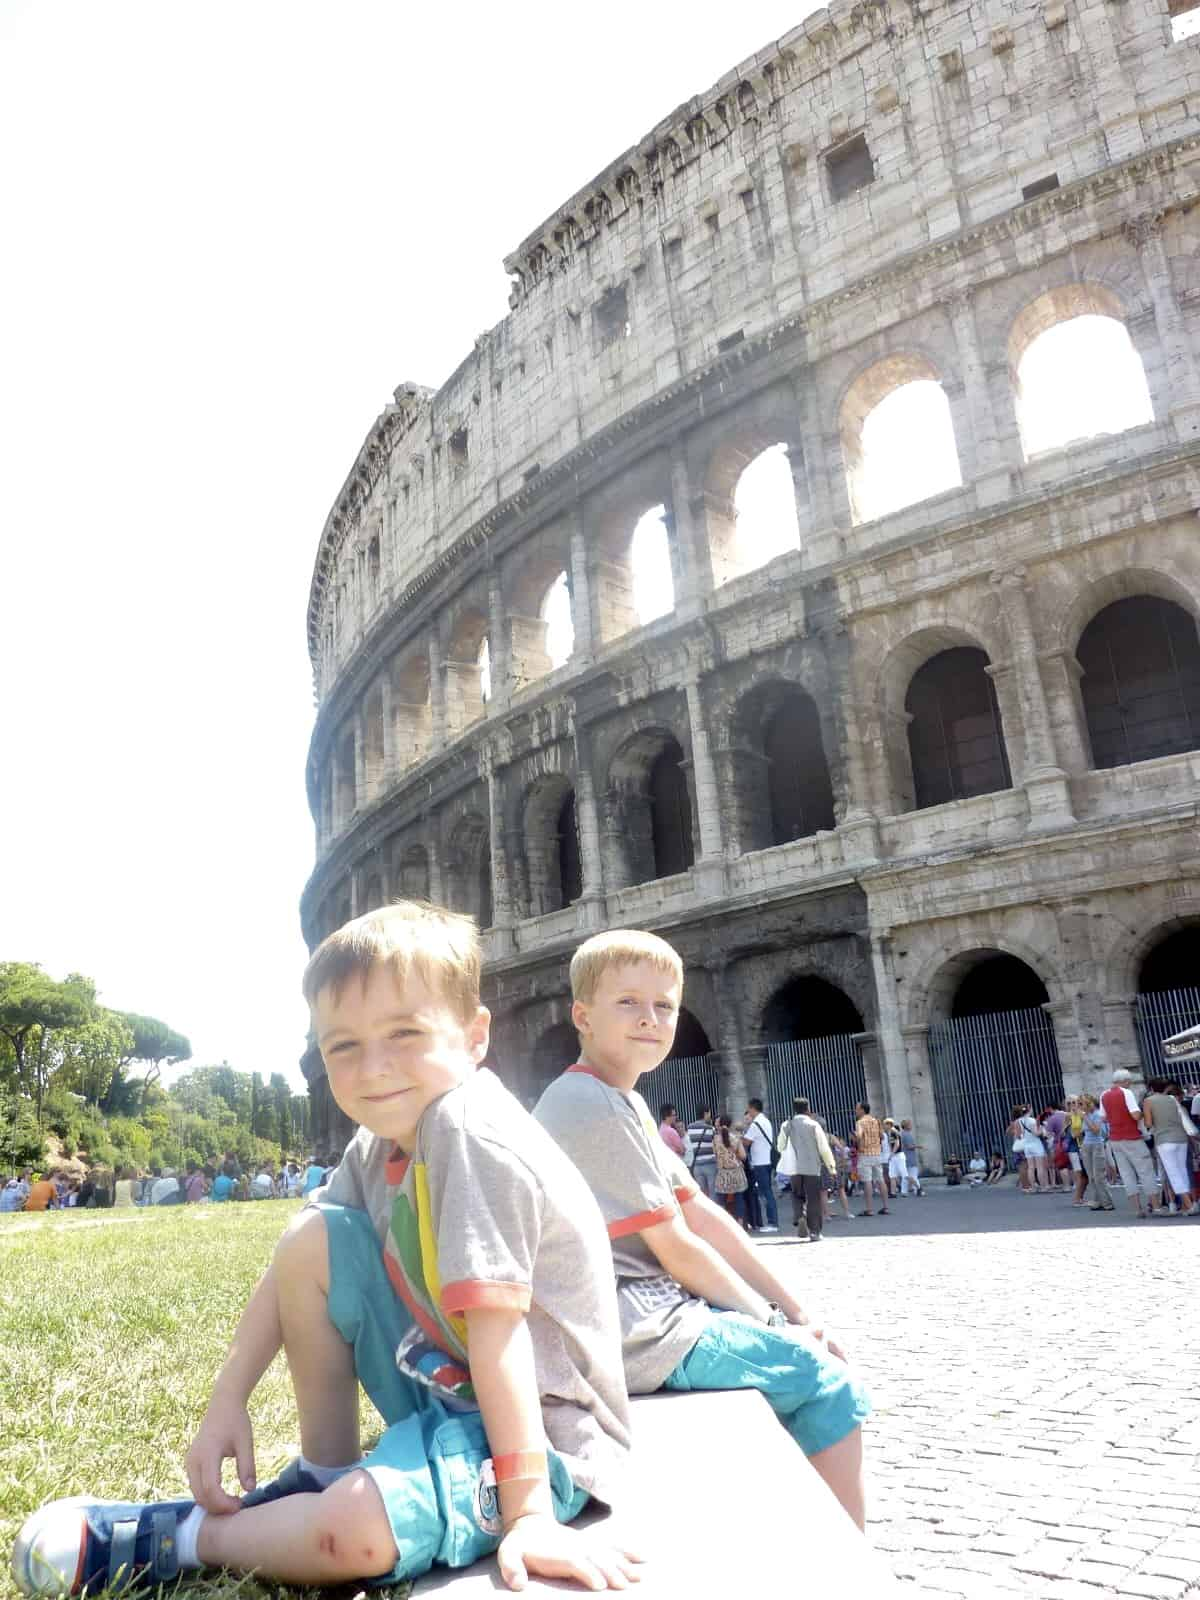 Children in Rome on a cruise shore excursion